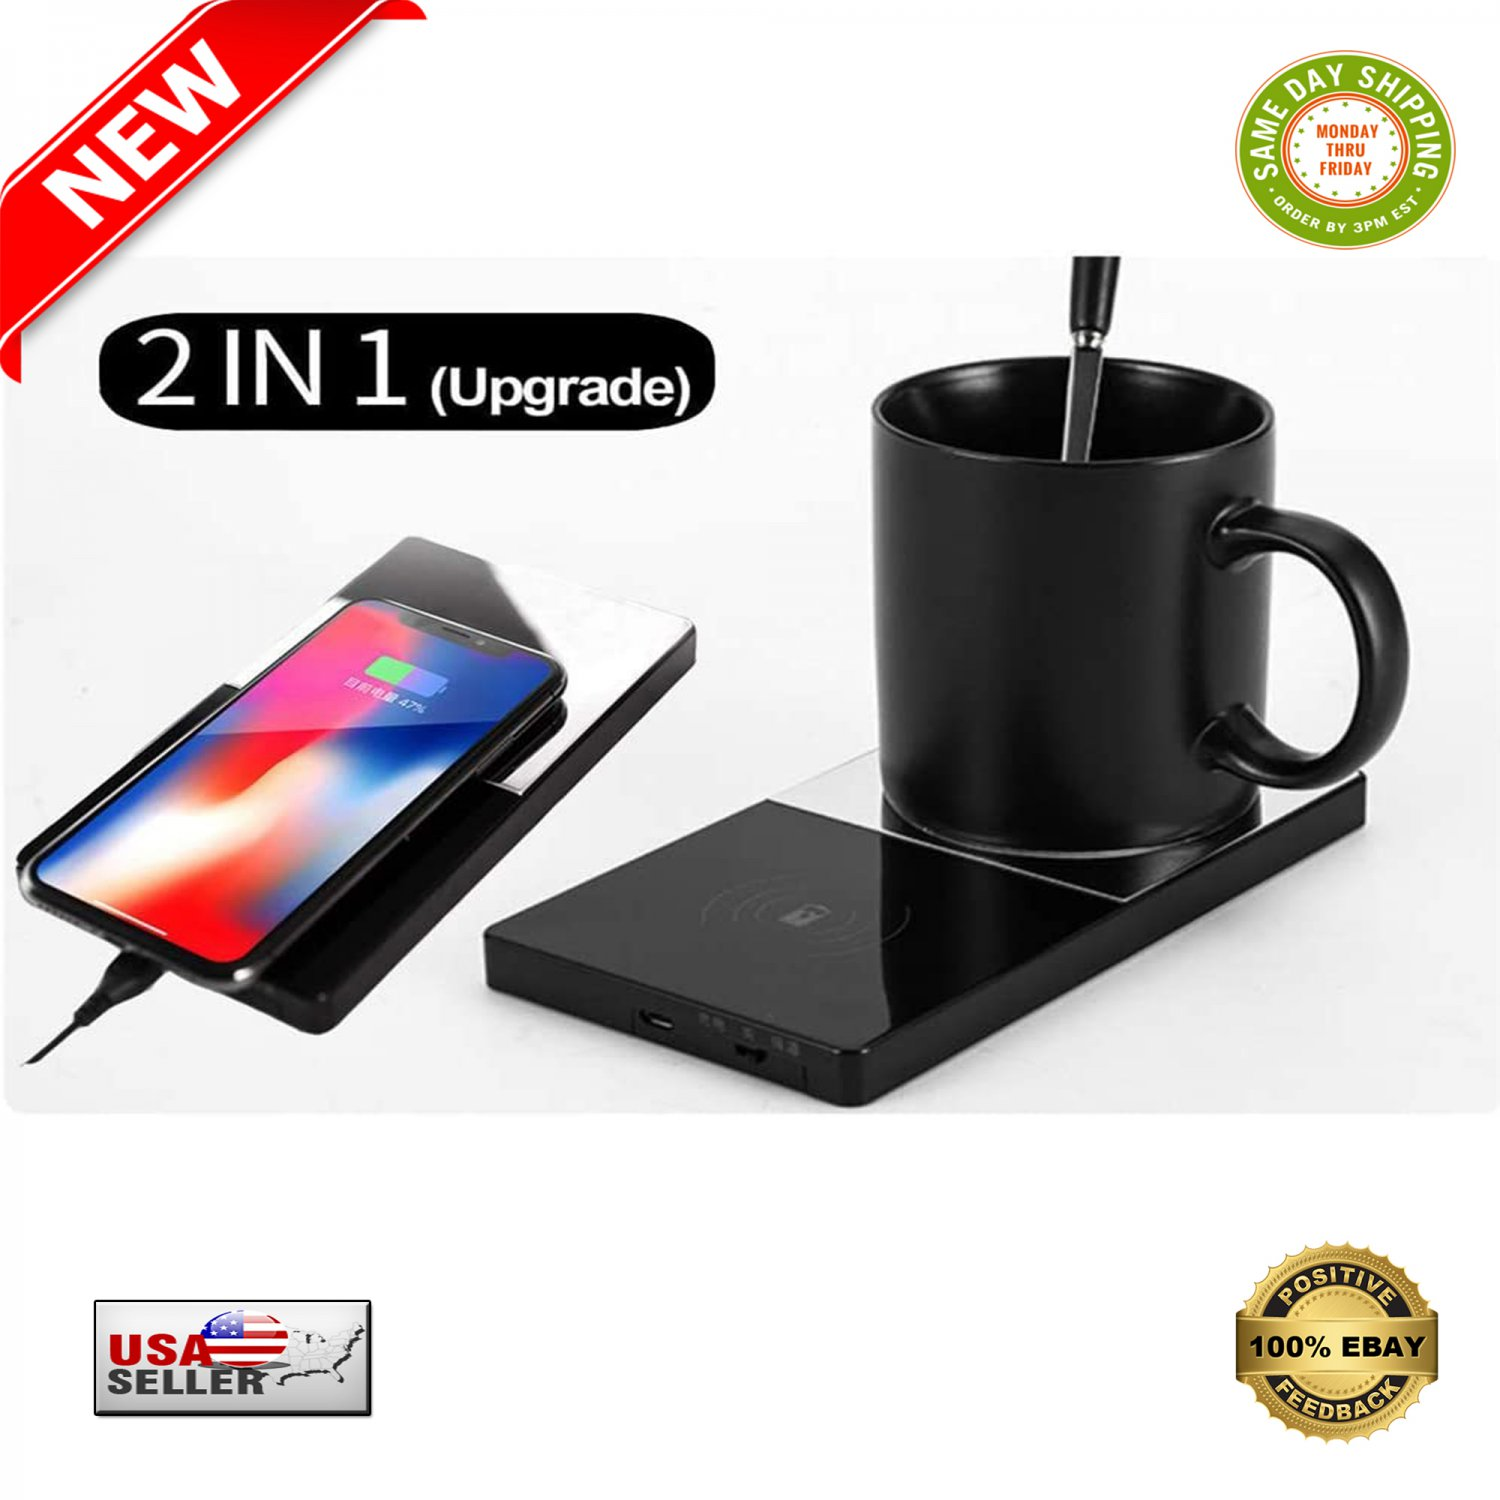 � 2 in 1 Coffee Warmer Pad With Phone Wireless Charger With Vanity Mirror Design �